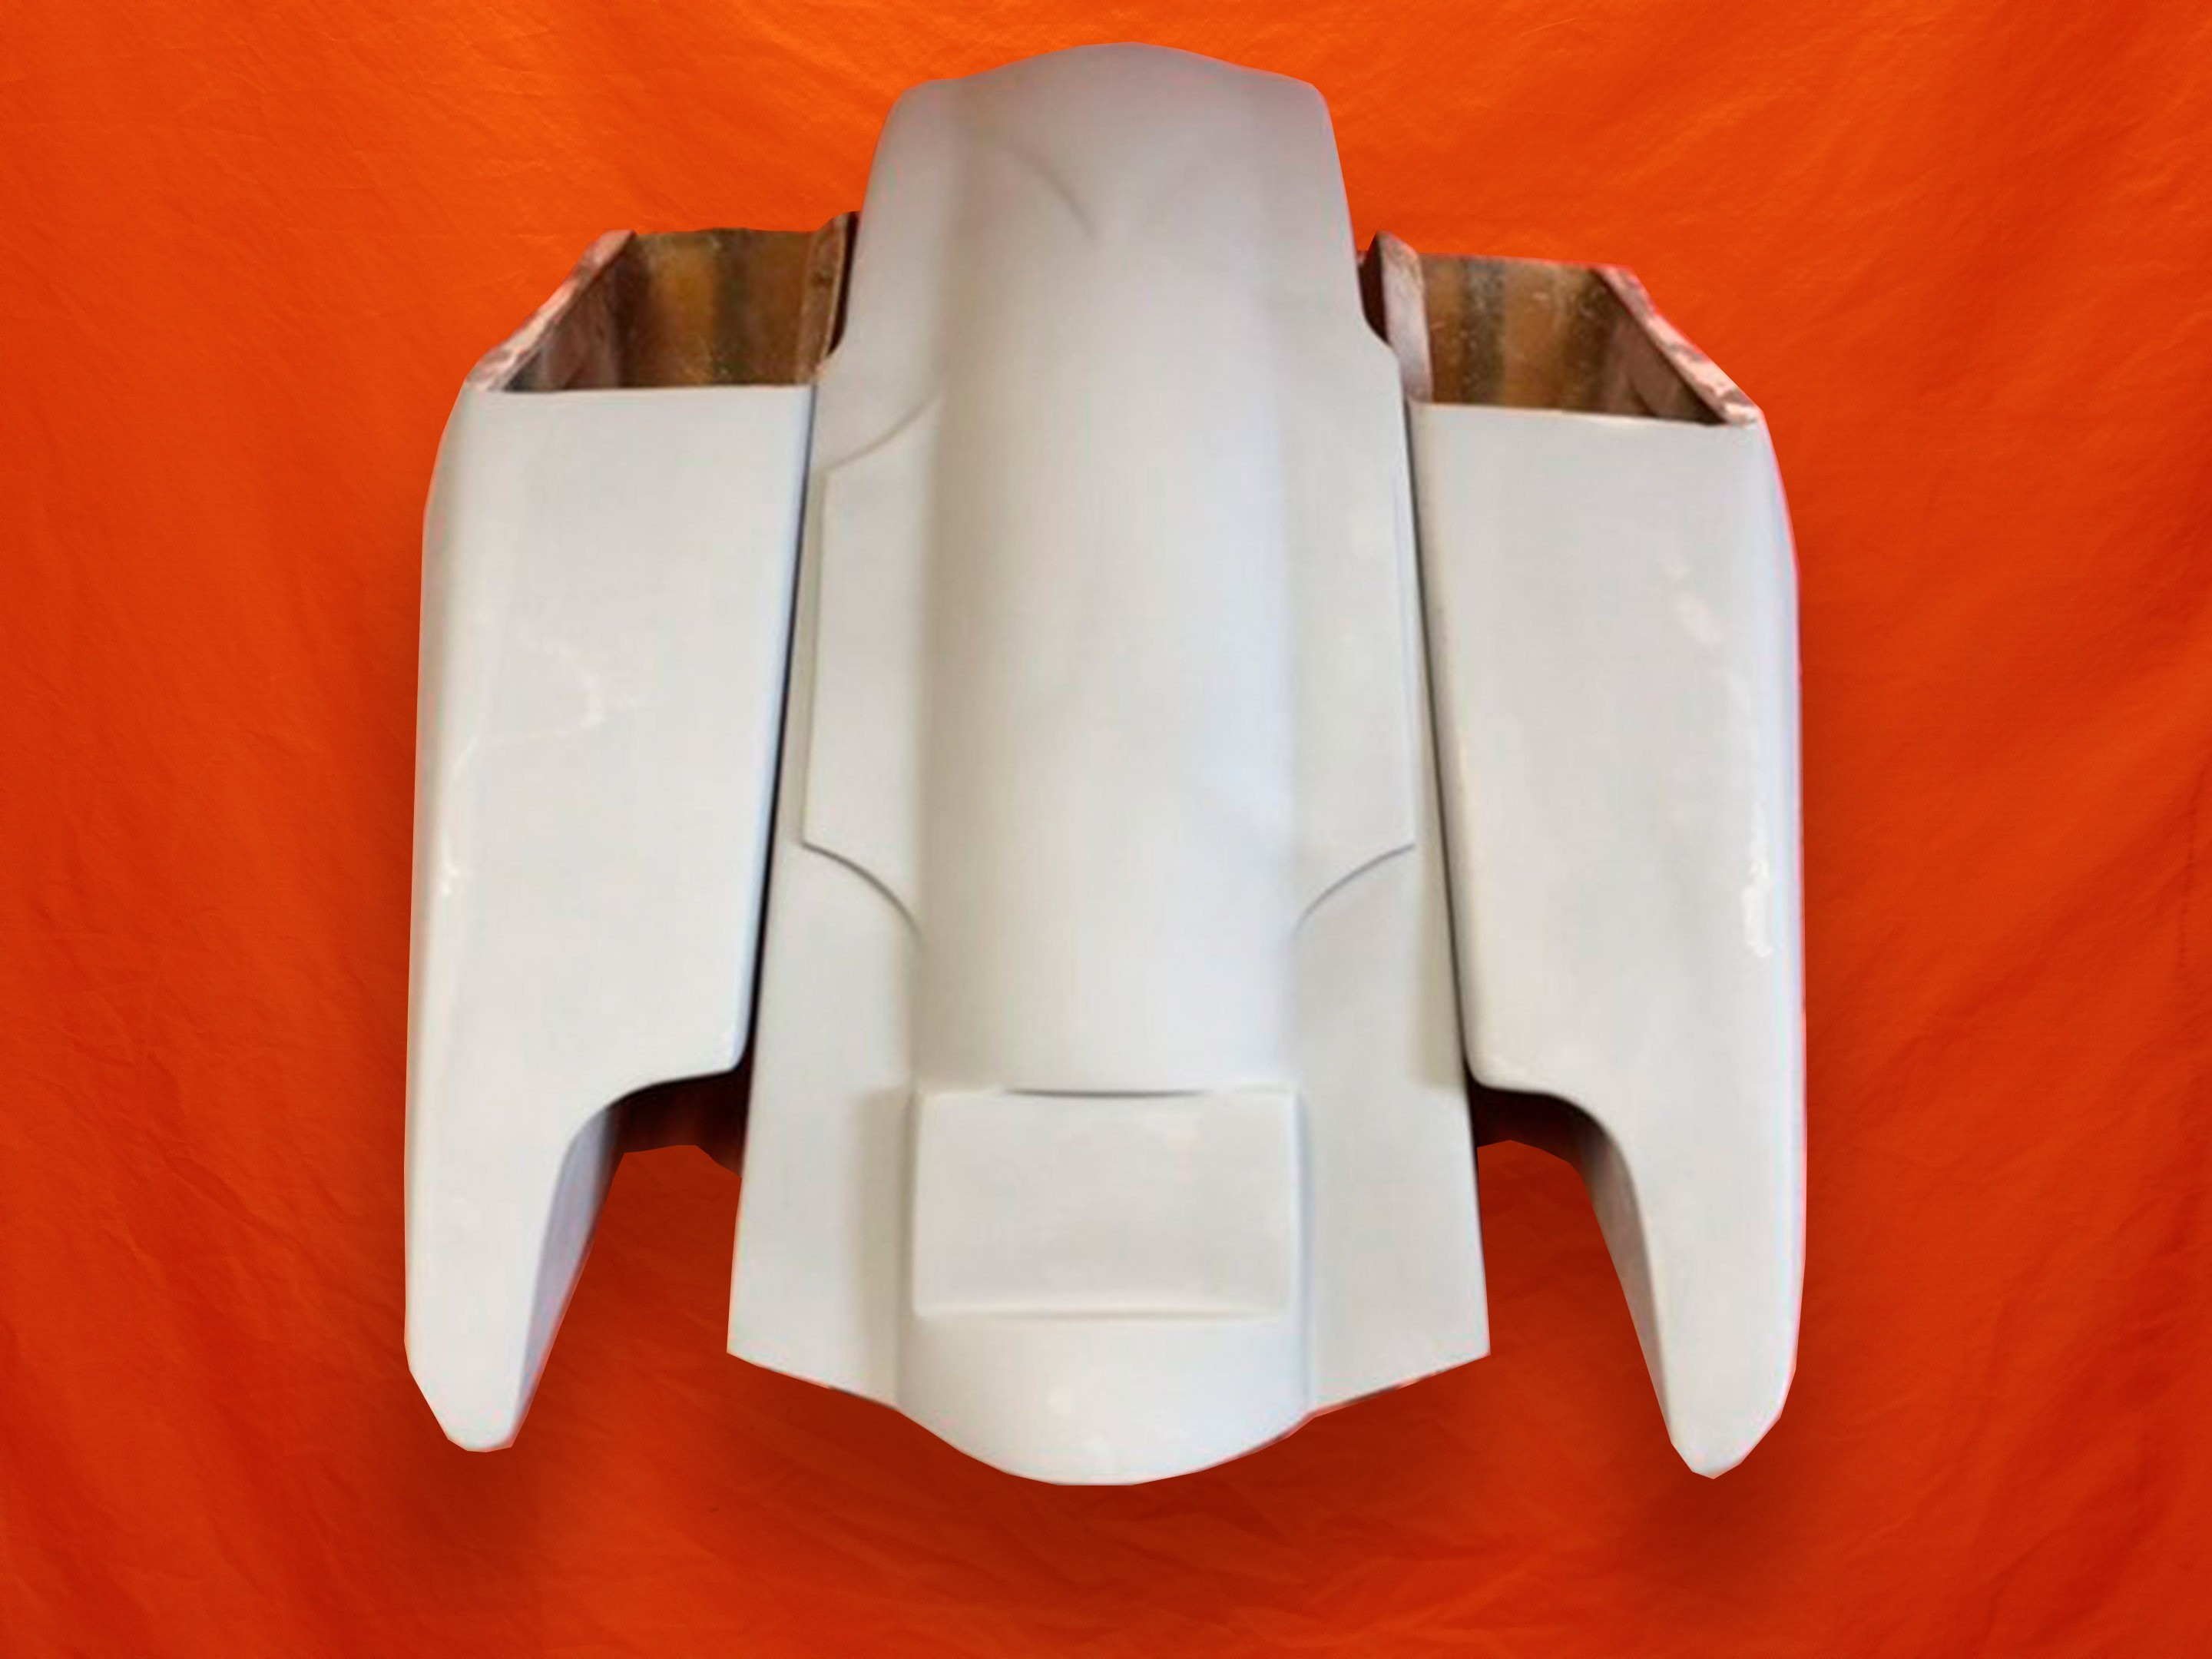 Harley-Davidson-5-Fifty-Five-Extended-Stretched-Saddlebag-Dual-CutOuts-and-Fender-Kit-No Lids